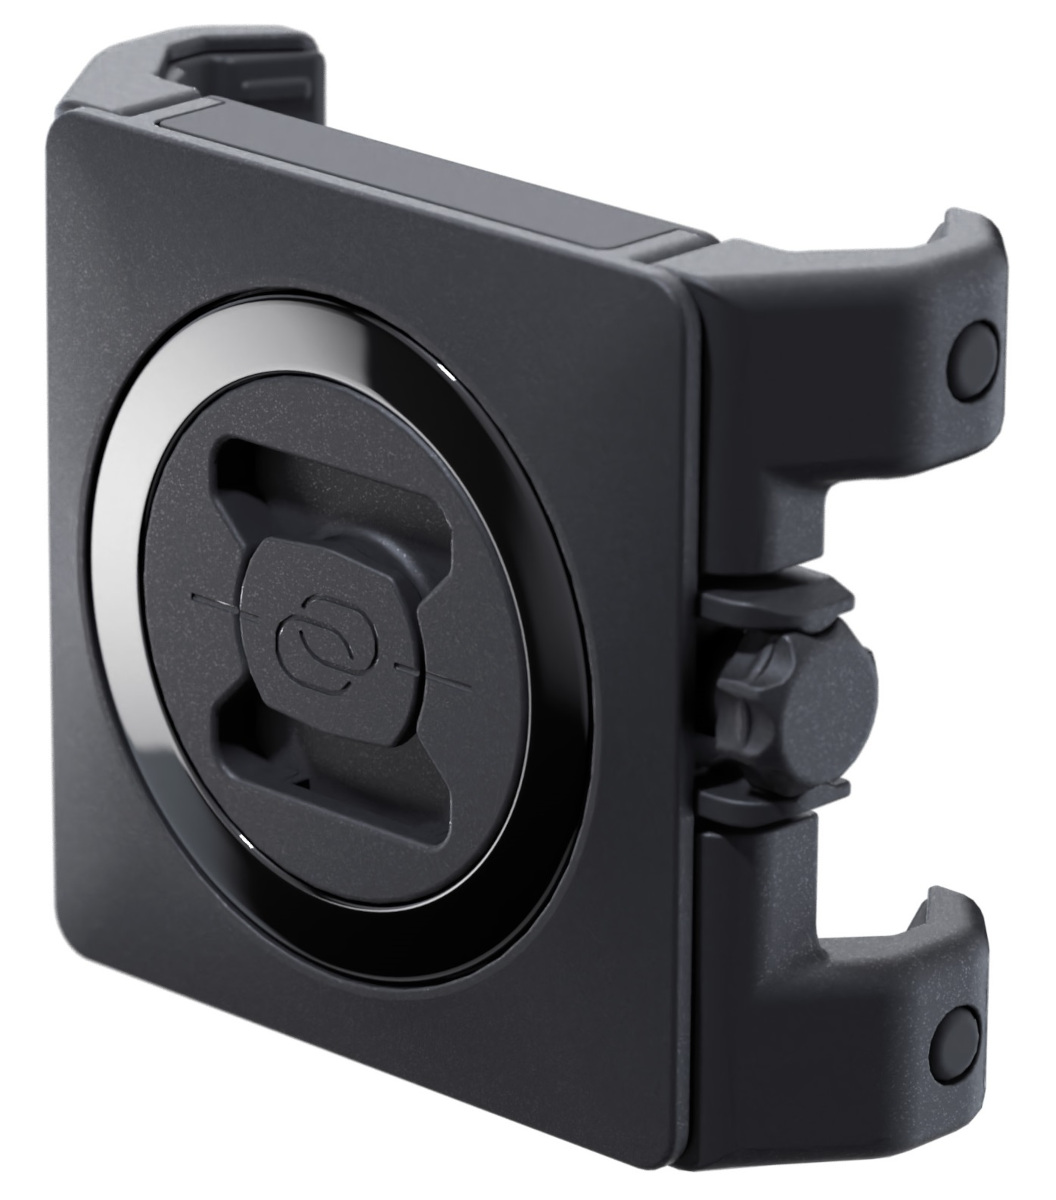 SP Connect Universal Phone Clamp One Size Black